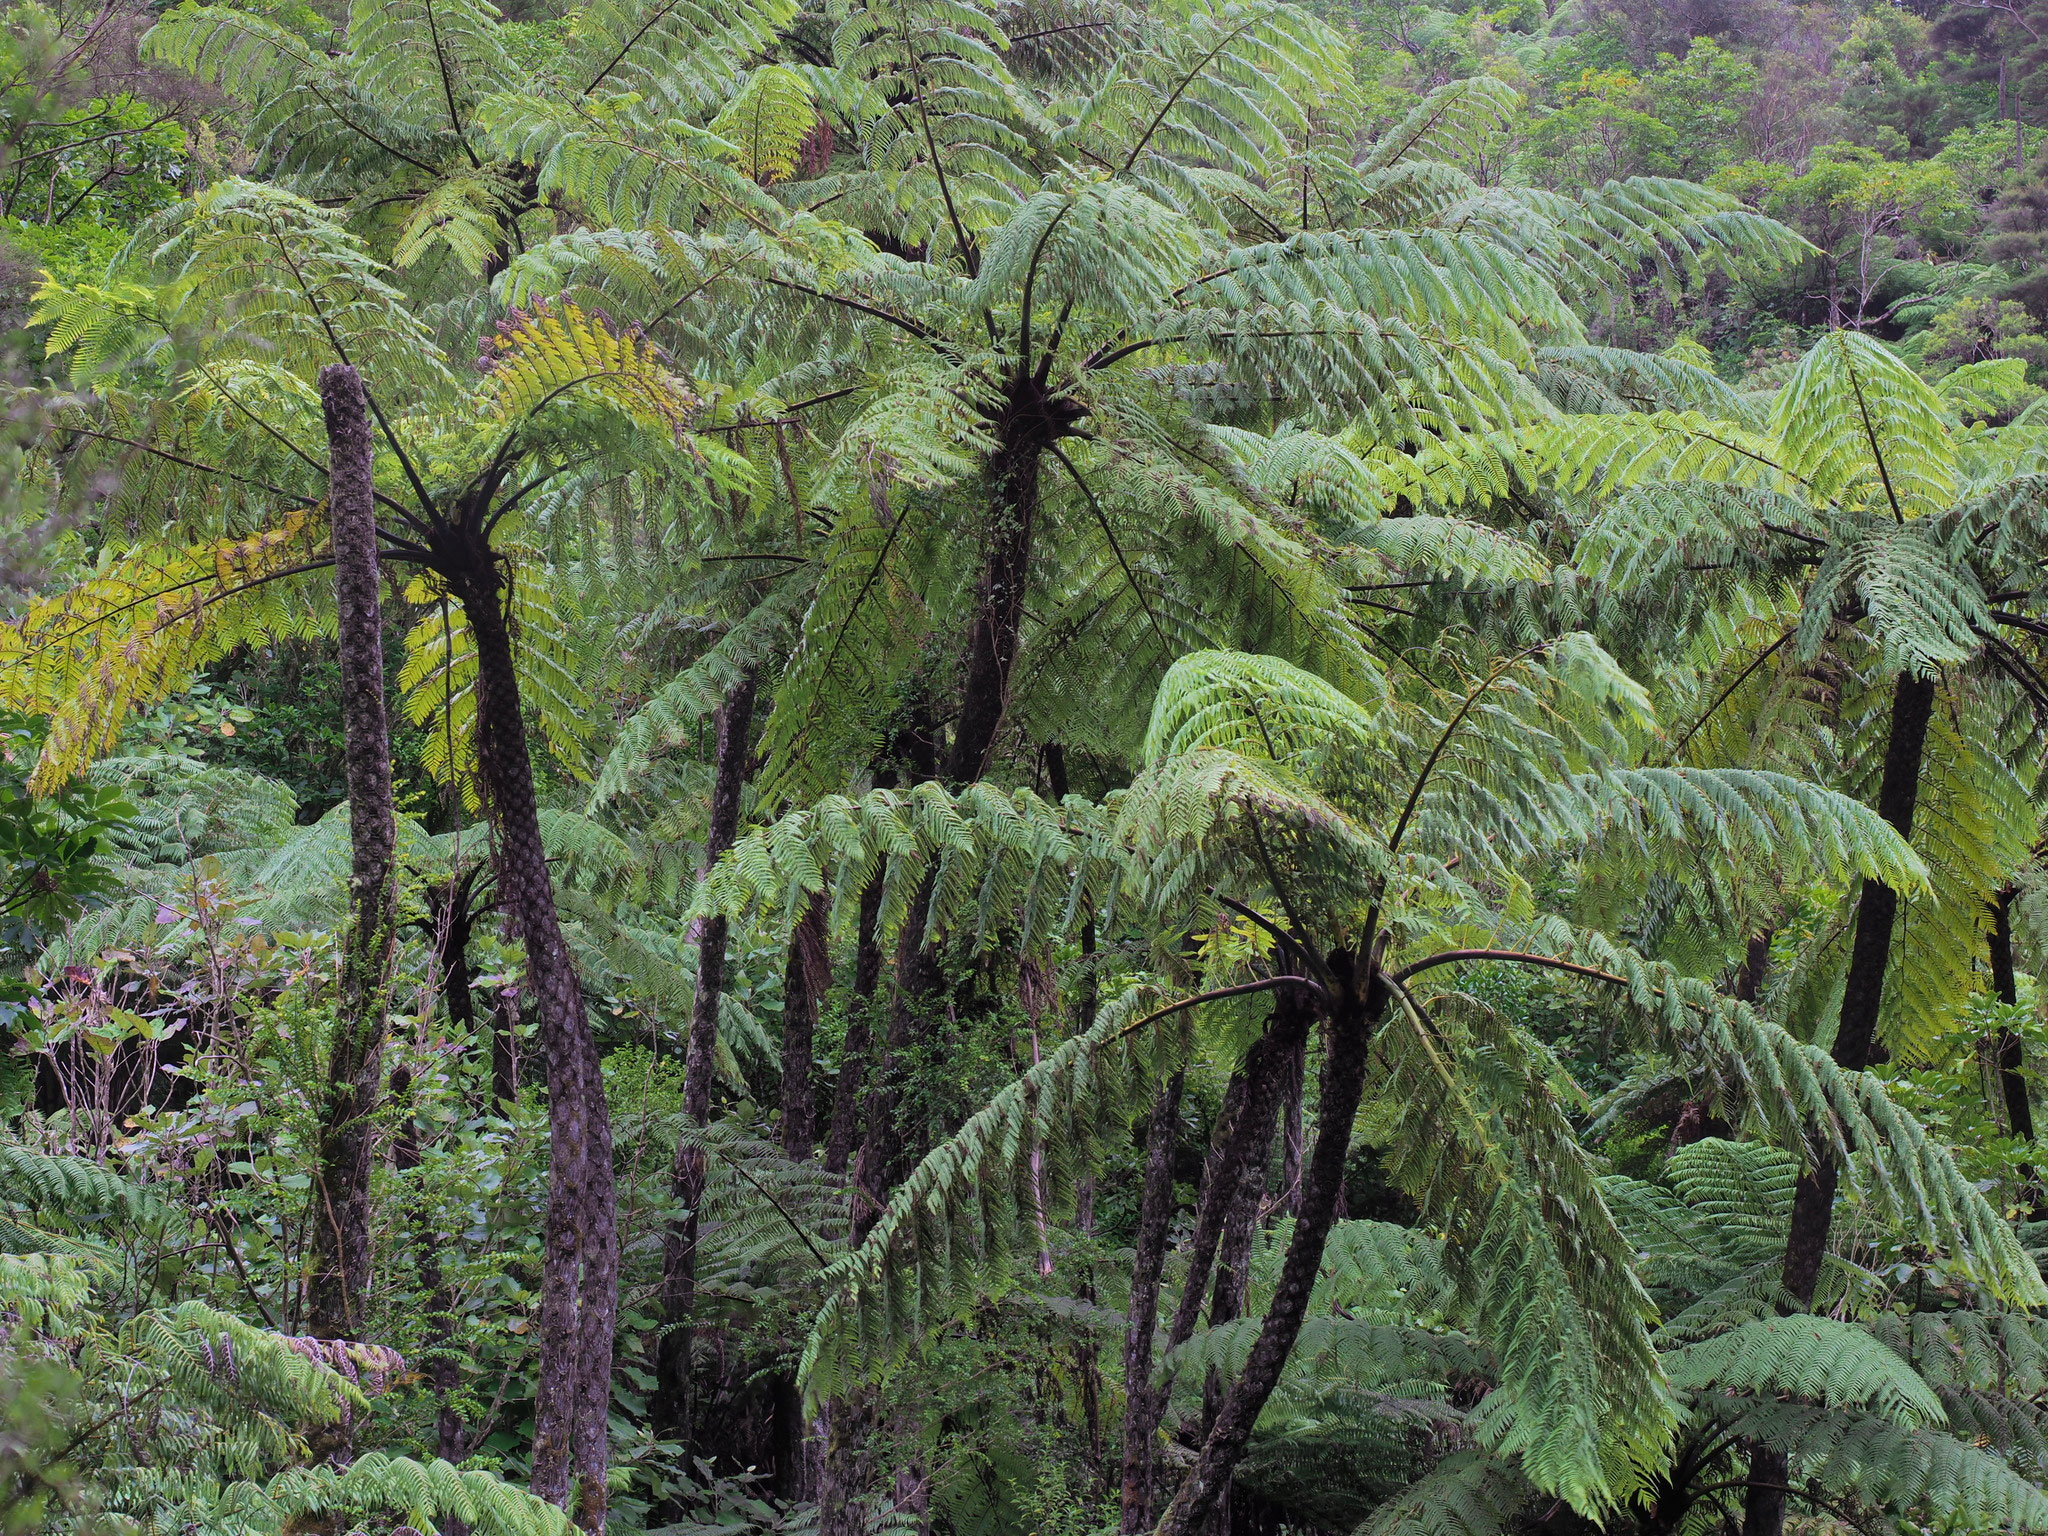 A group of large tree ferns with black trunks